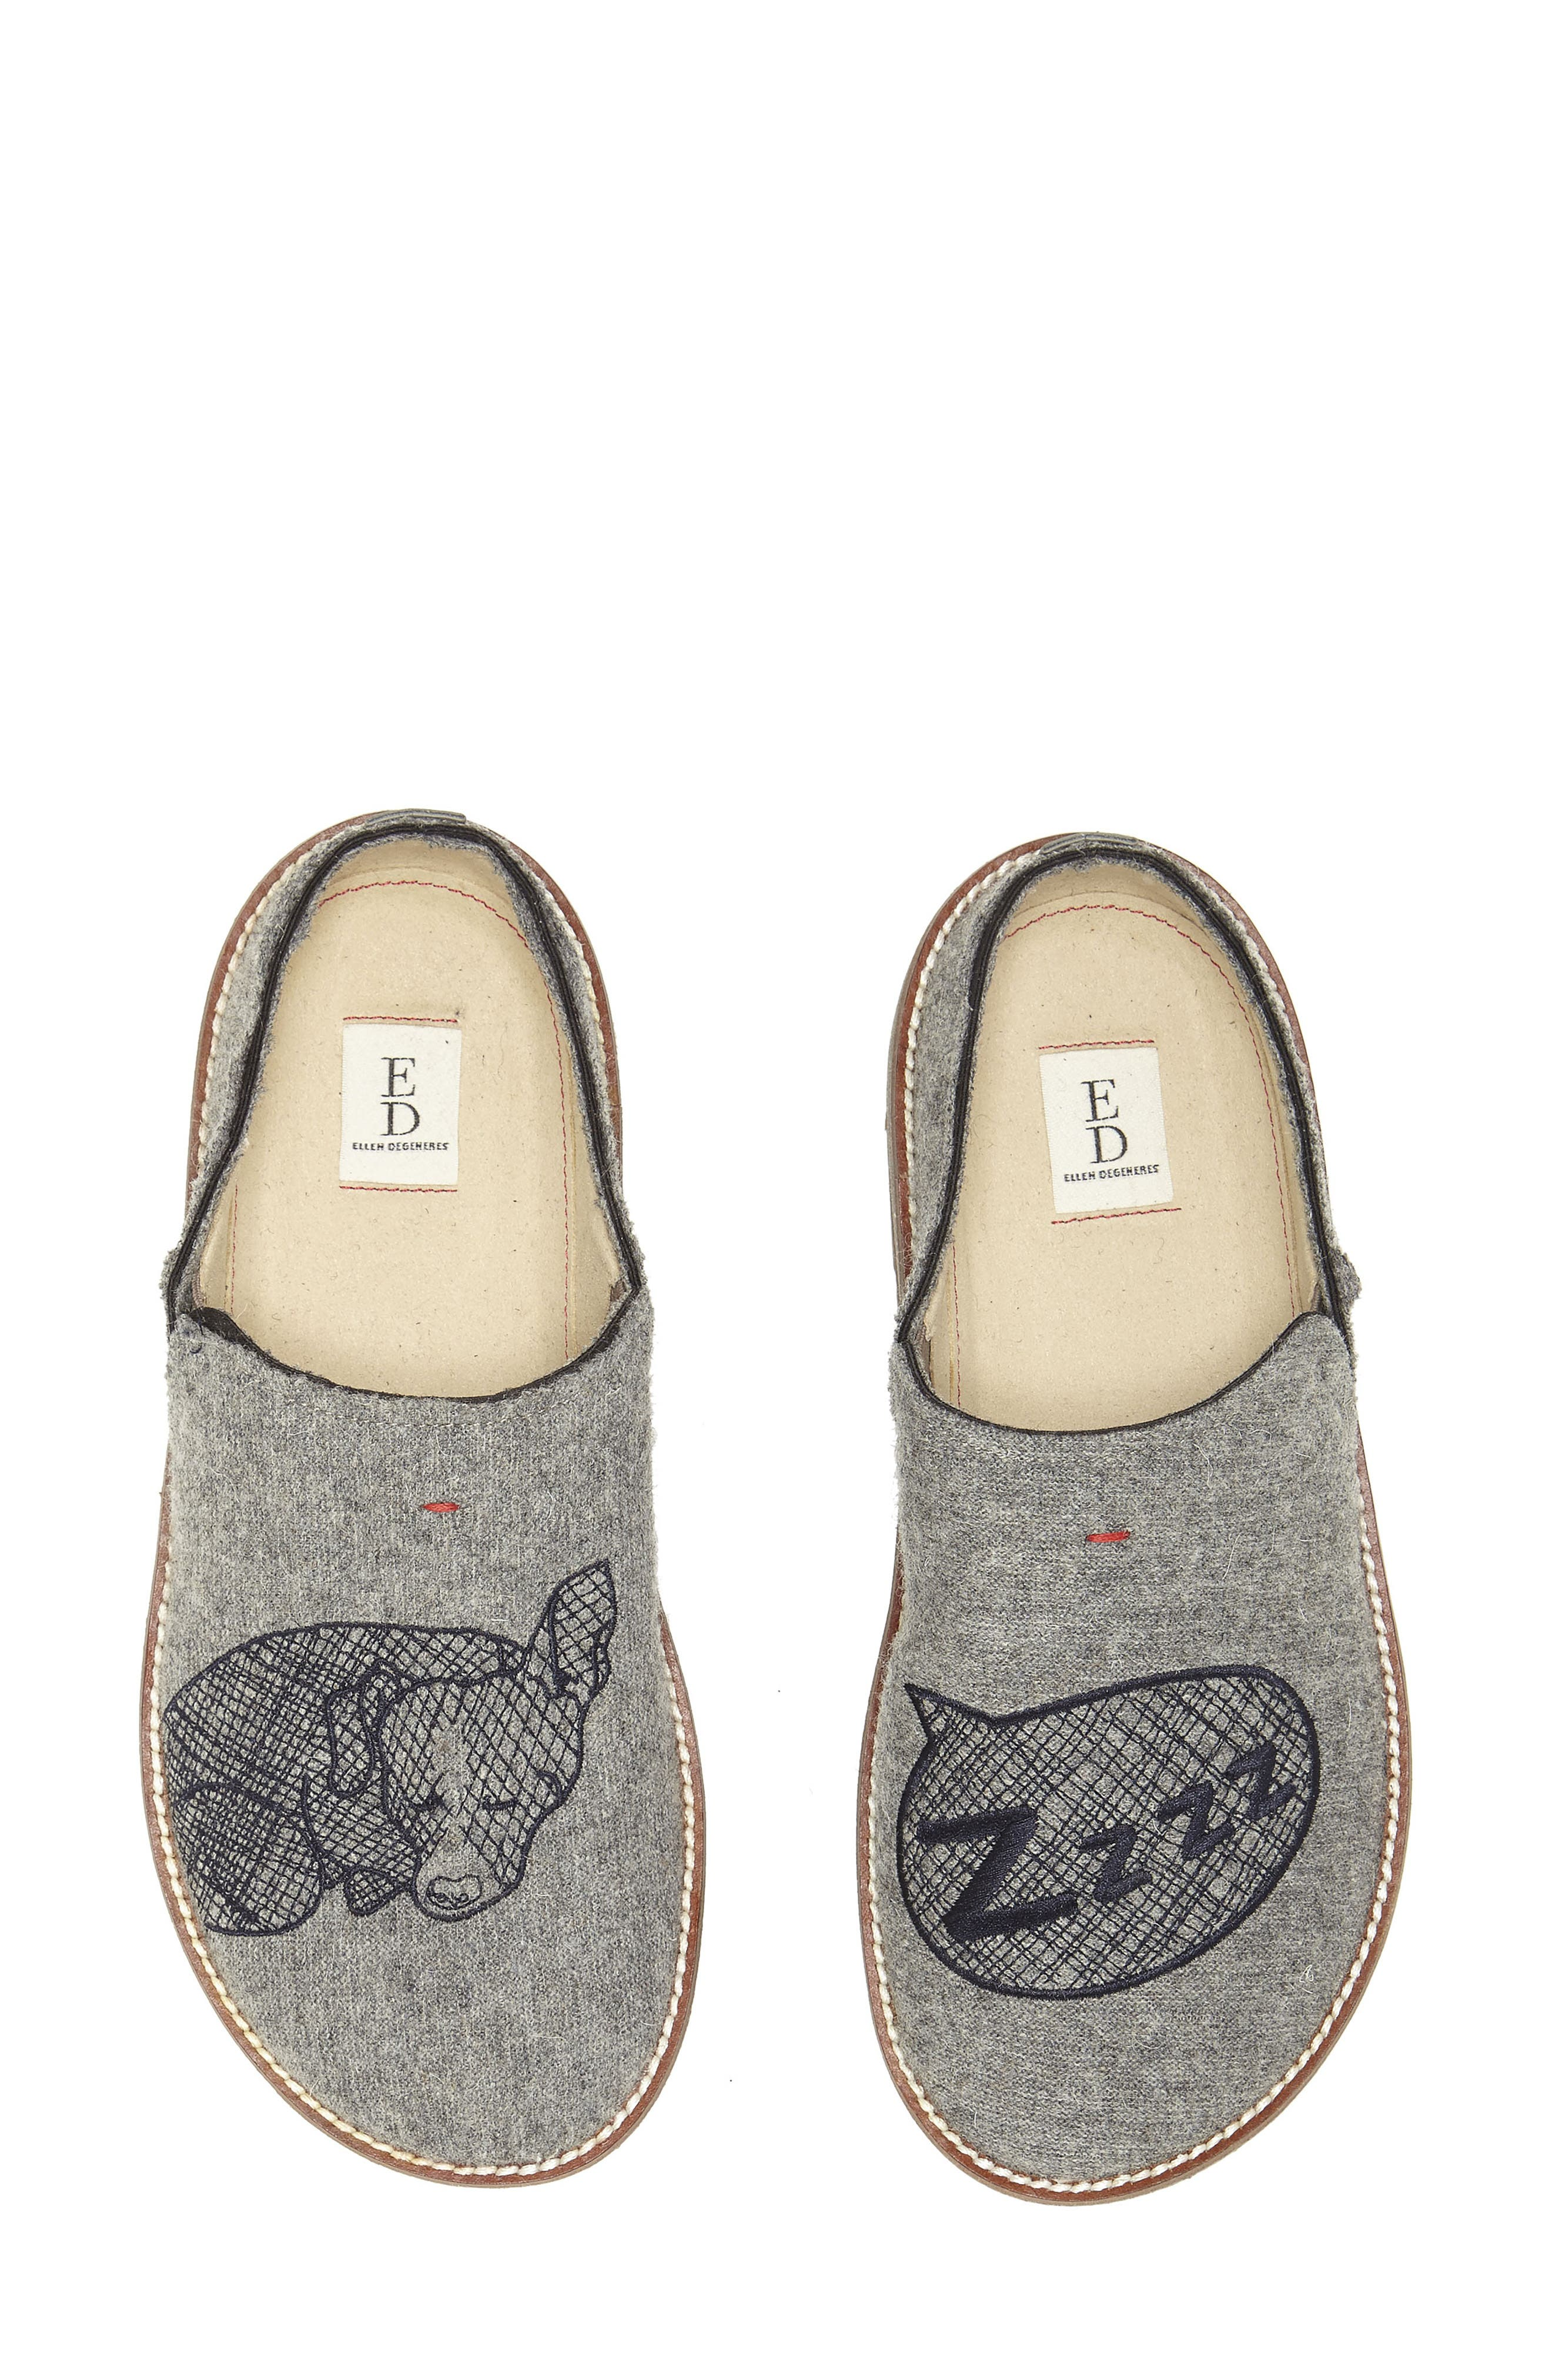 228566bc24be Women s ED Ellen Degeneres Shoes